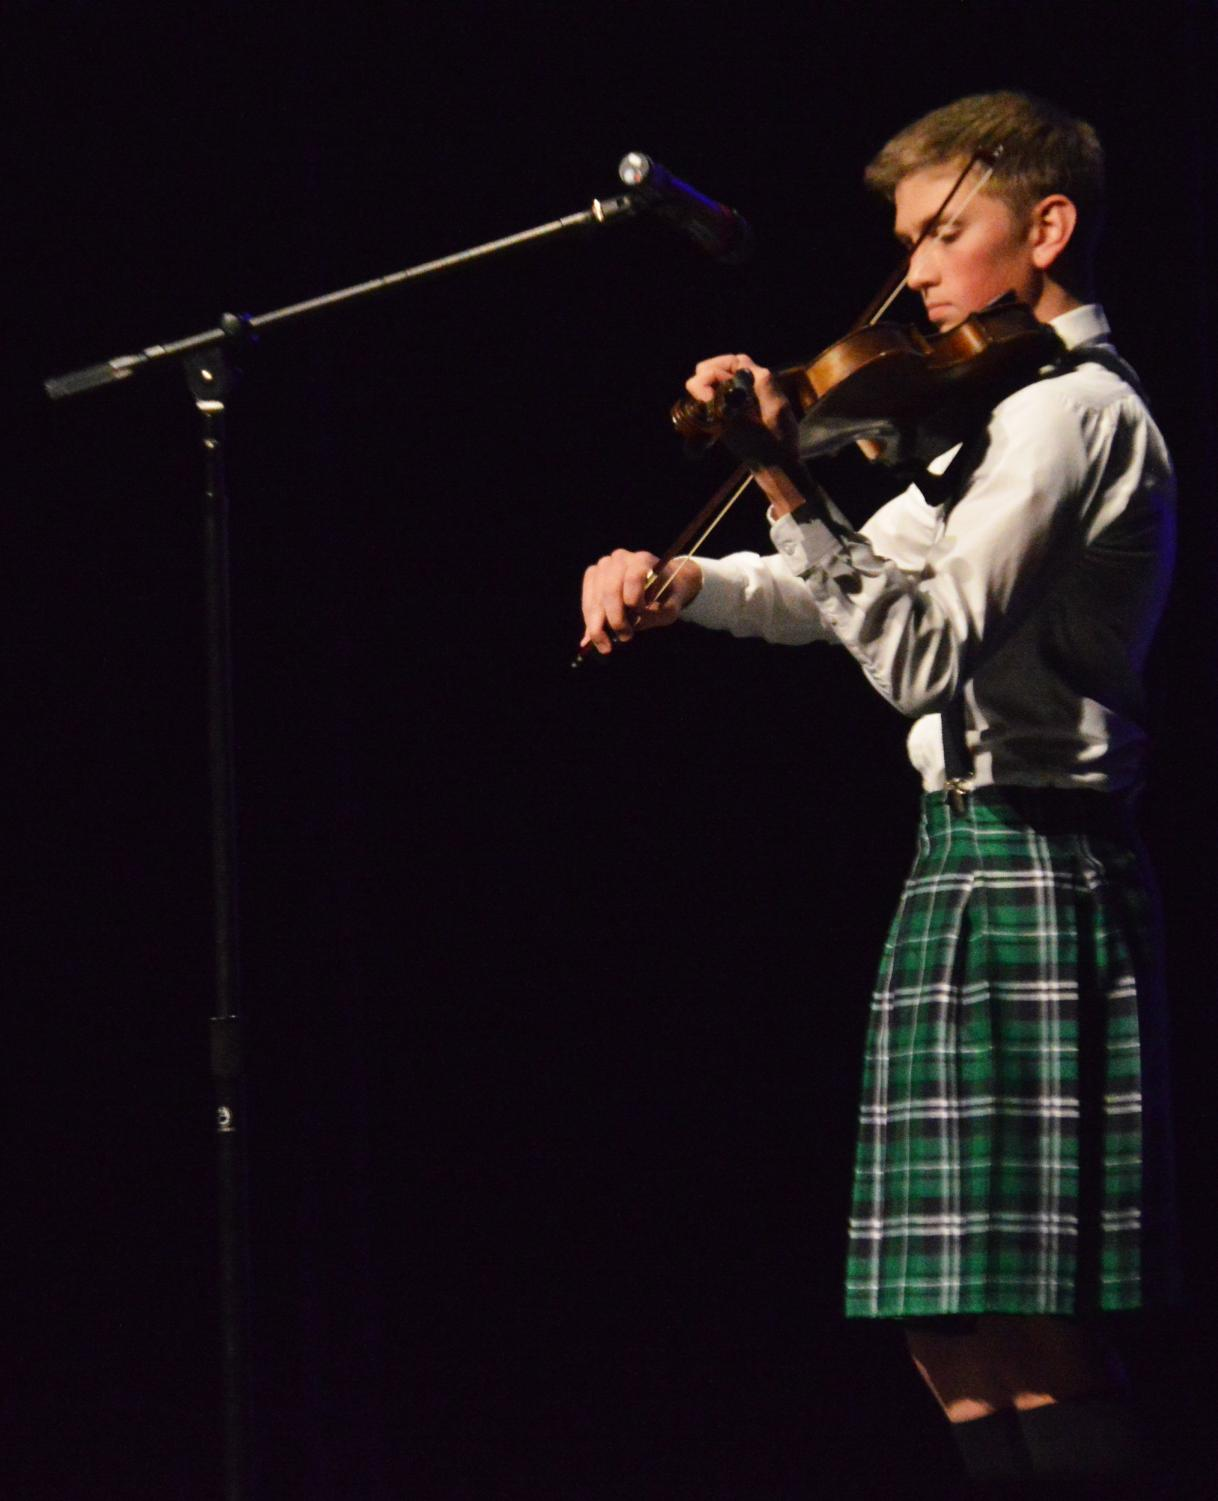 PREFORMING+IN+STYLE.+Joey+Walker+%2811%29+plays+the+violin+in+a+kilt+for+his+talent+preformance.